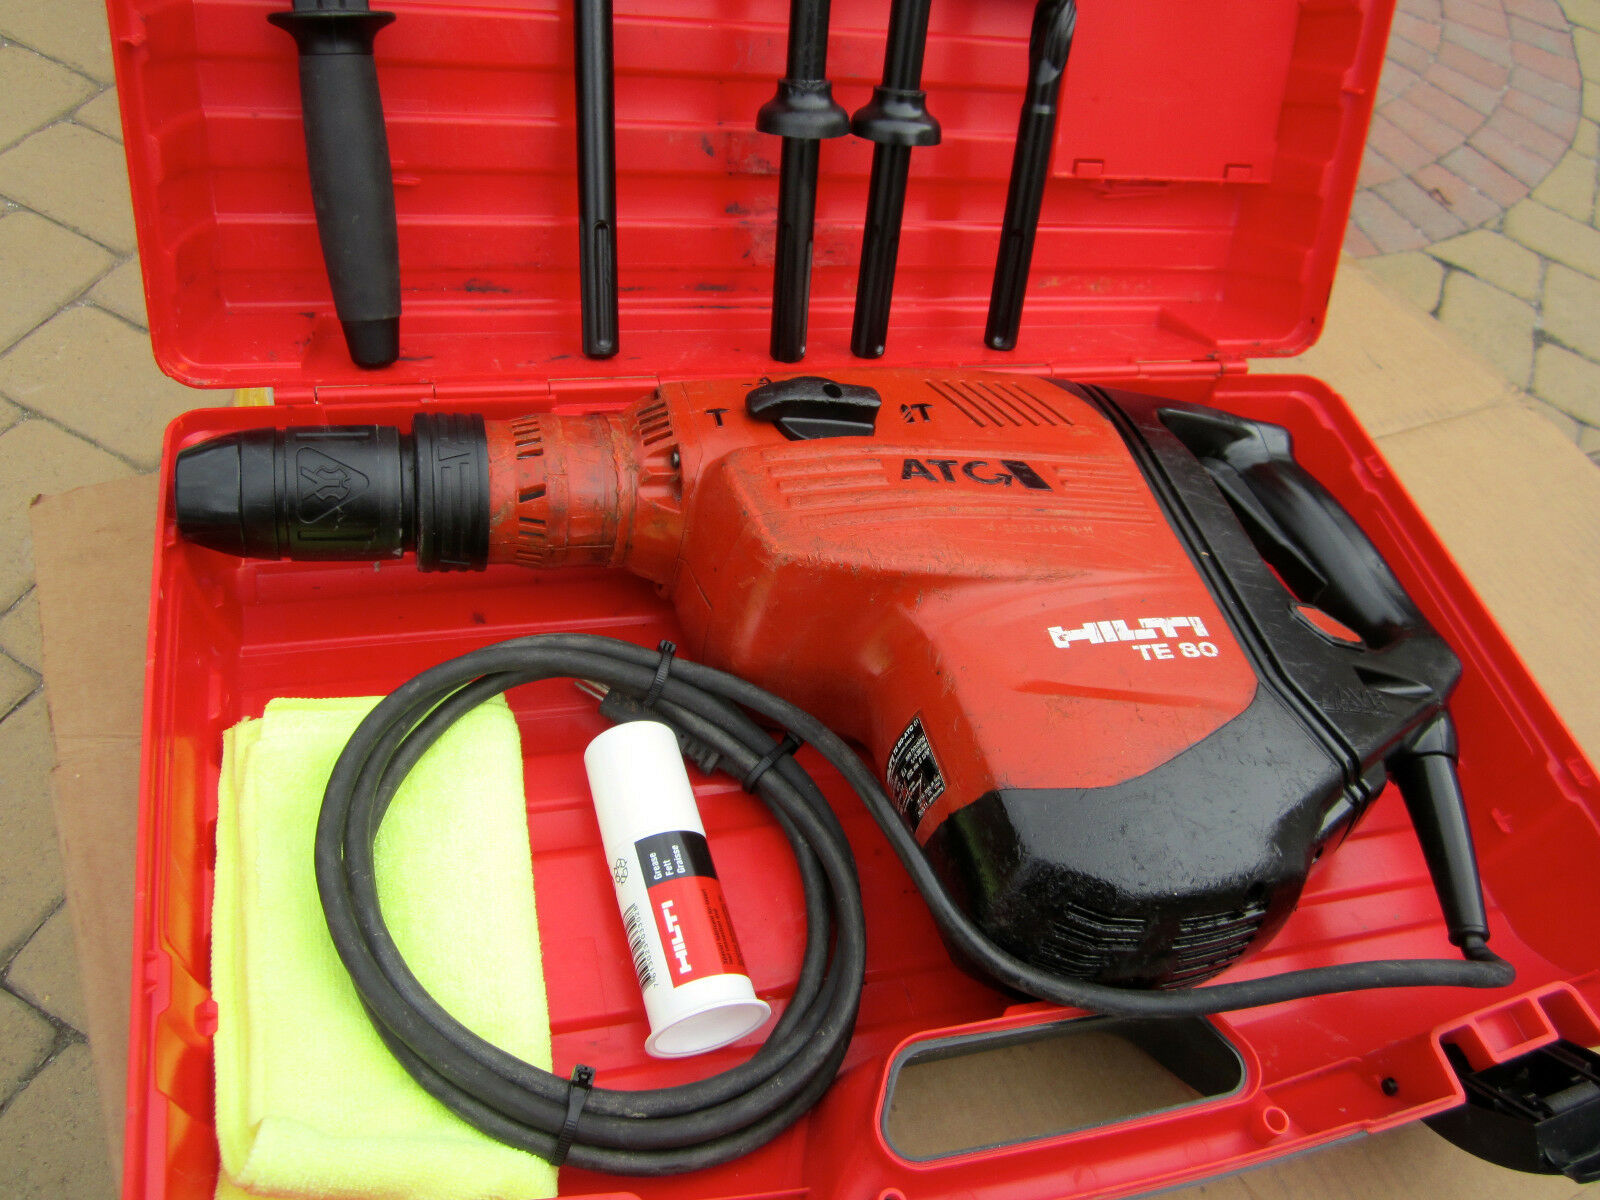 hilti te 80 atc avr combi hammer good condition made in. Black Bedroom Furniture Sets. Home Design Ideas